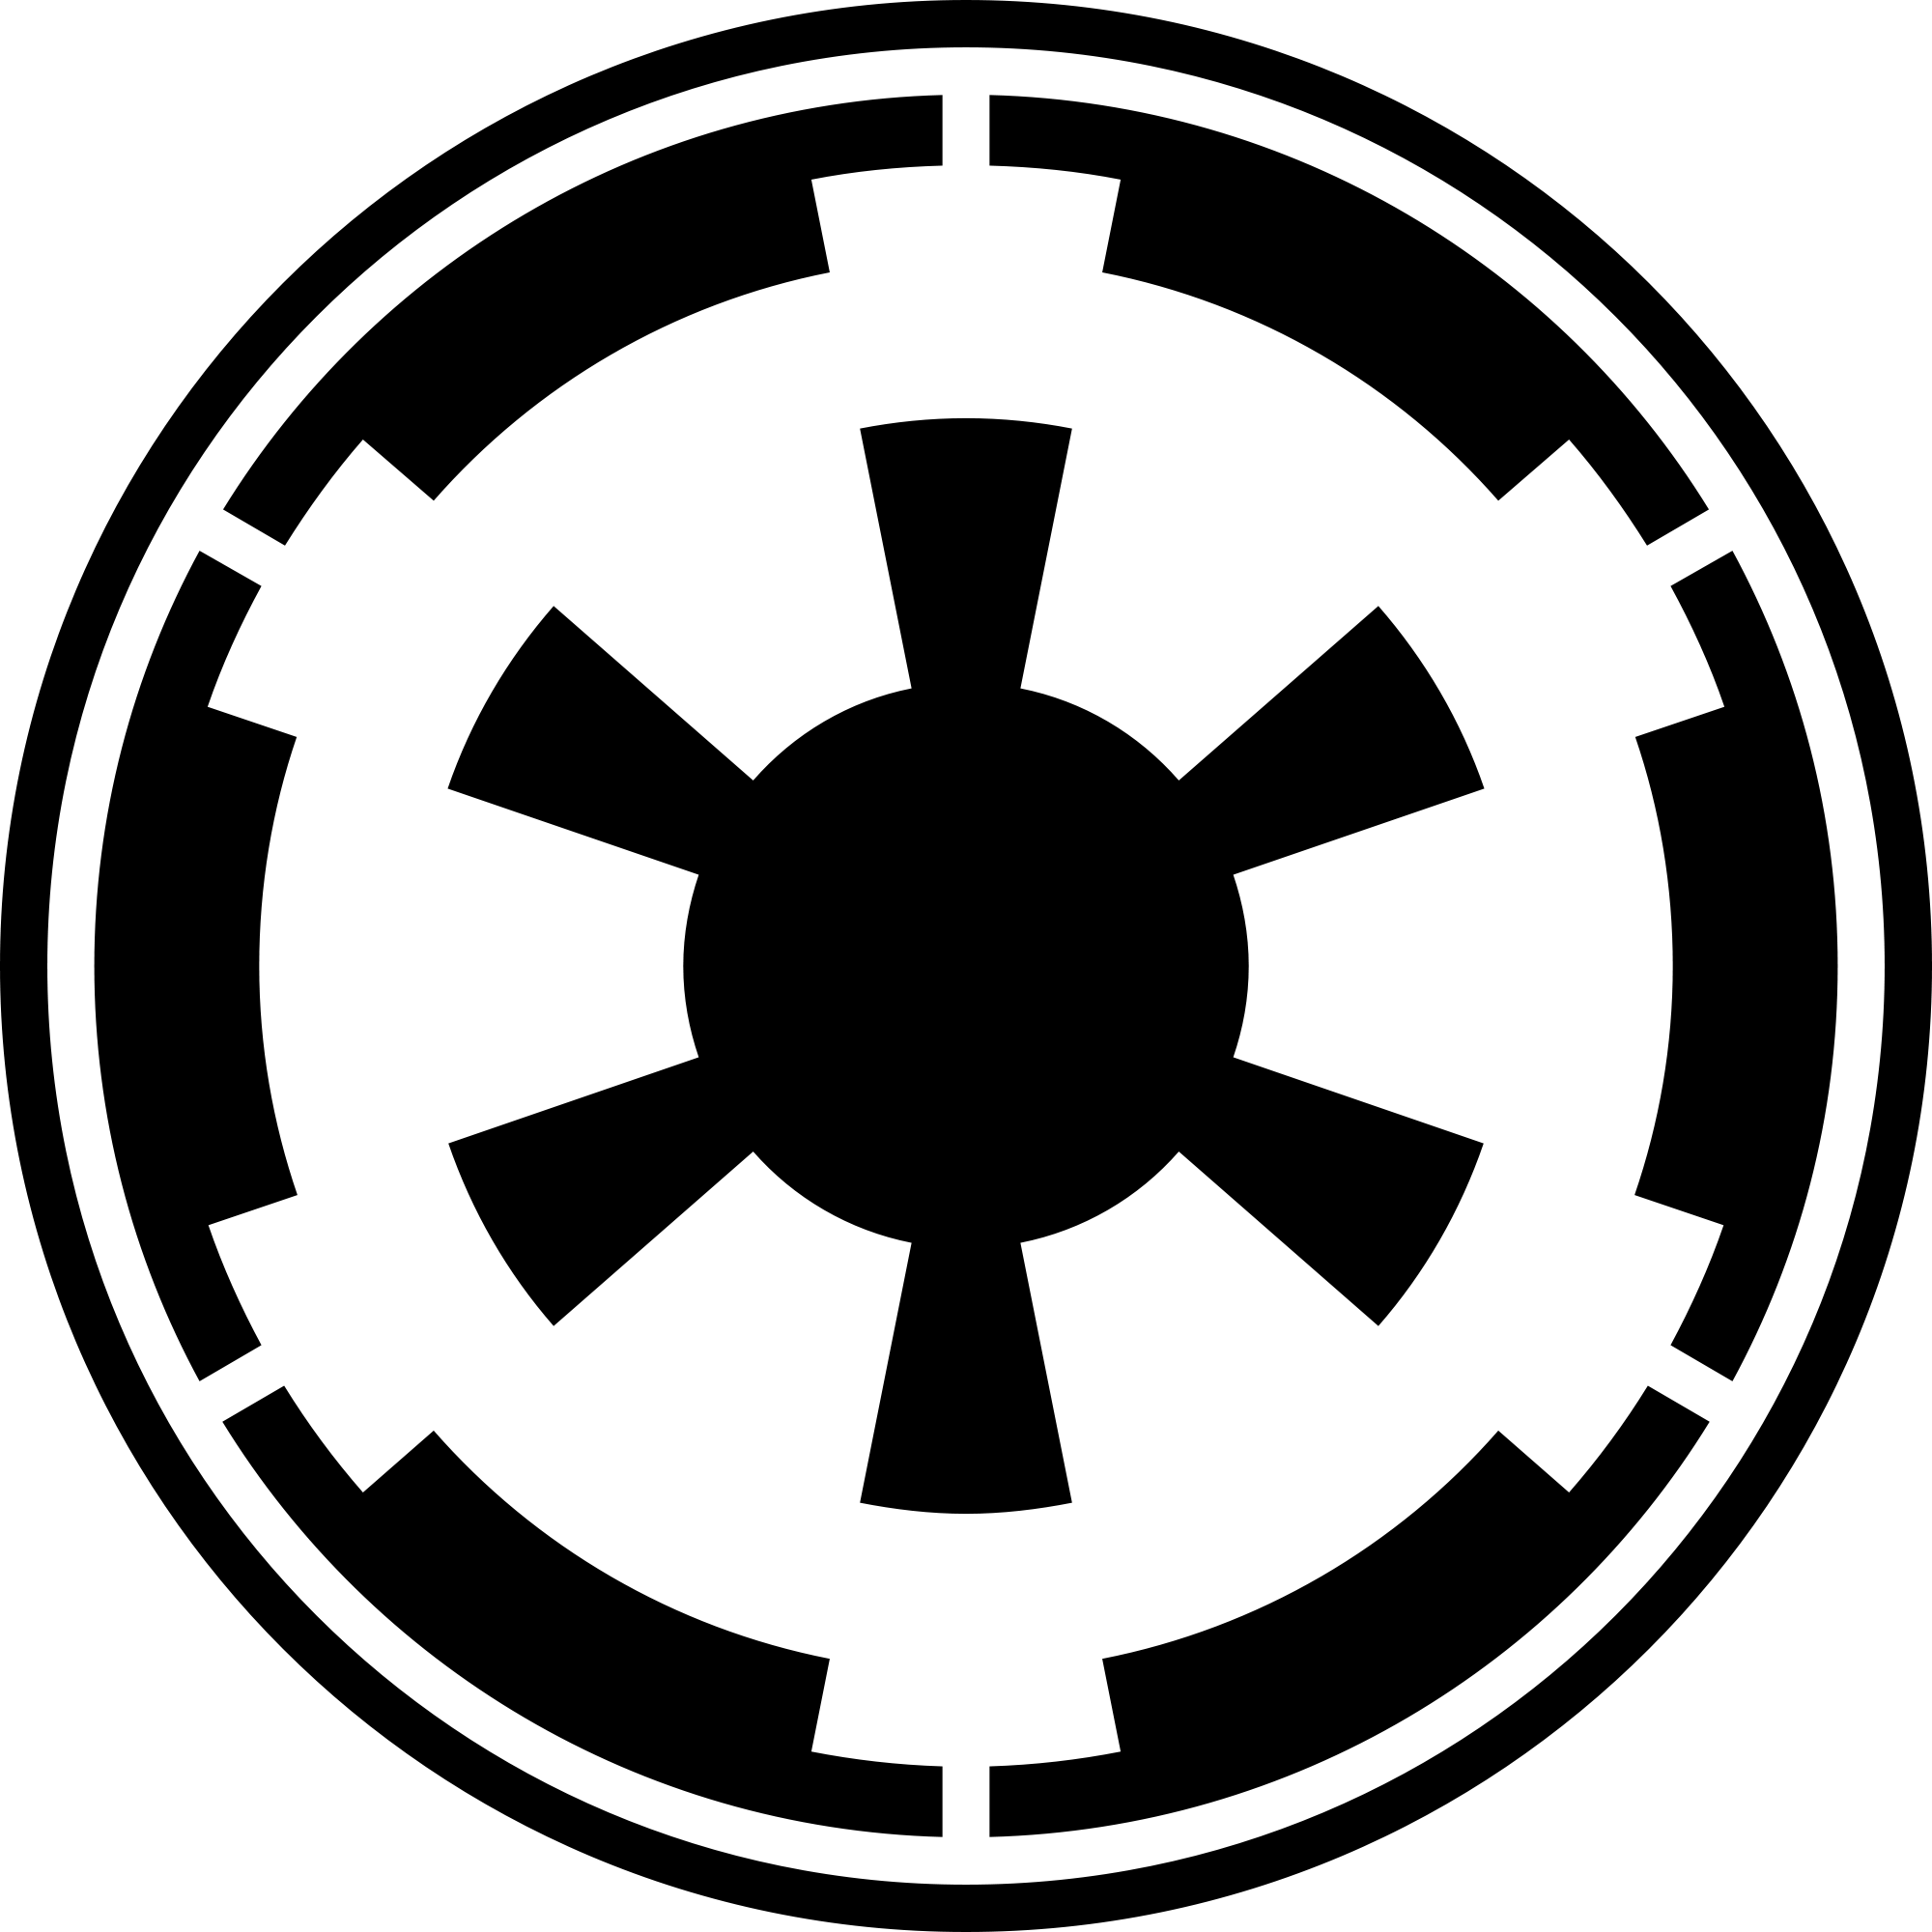 Galactic empire rebels wiki. Planet clipart star wars planet